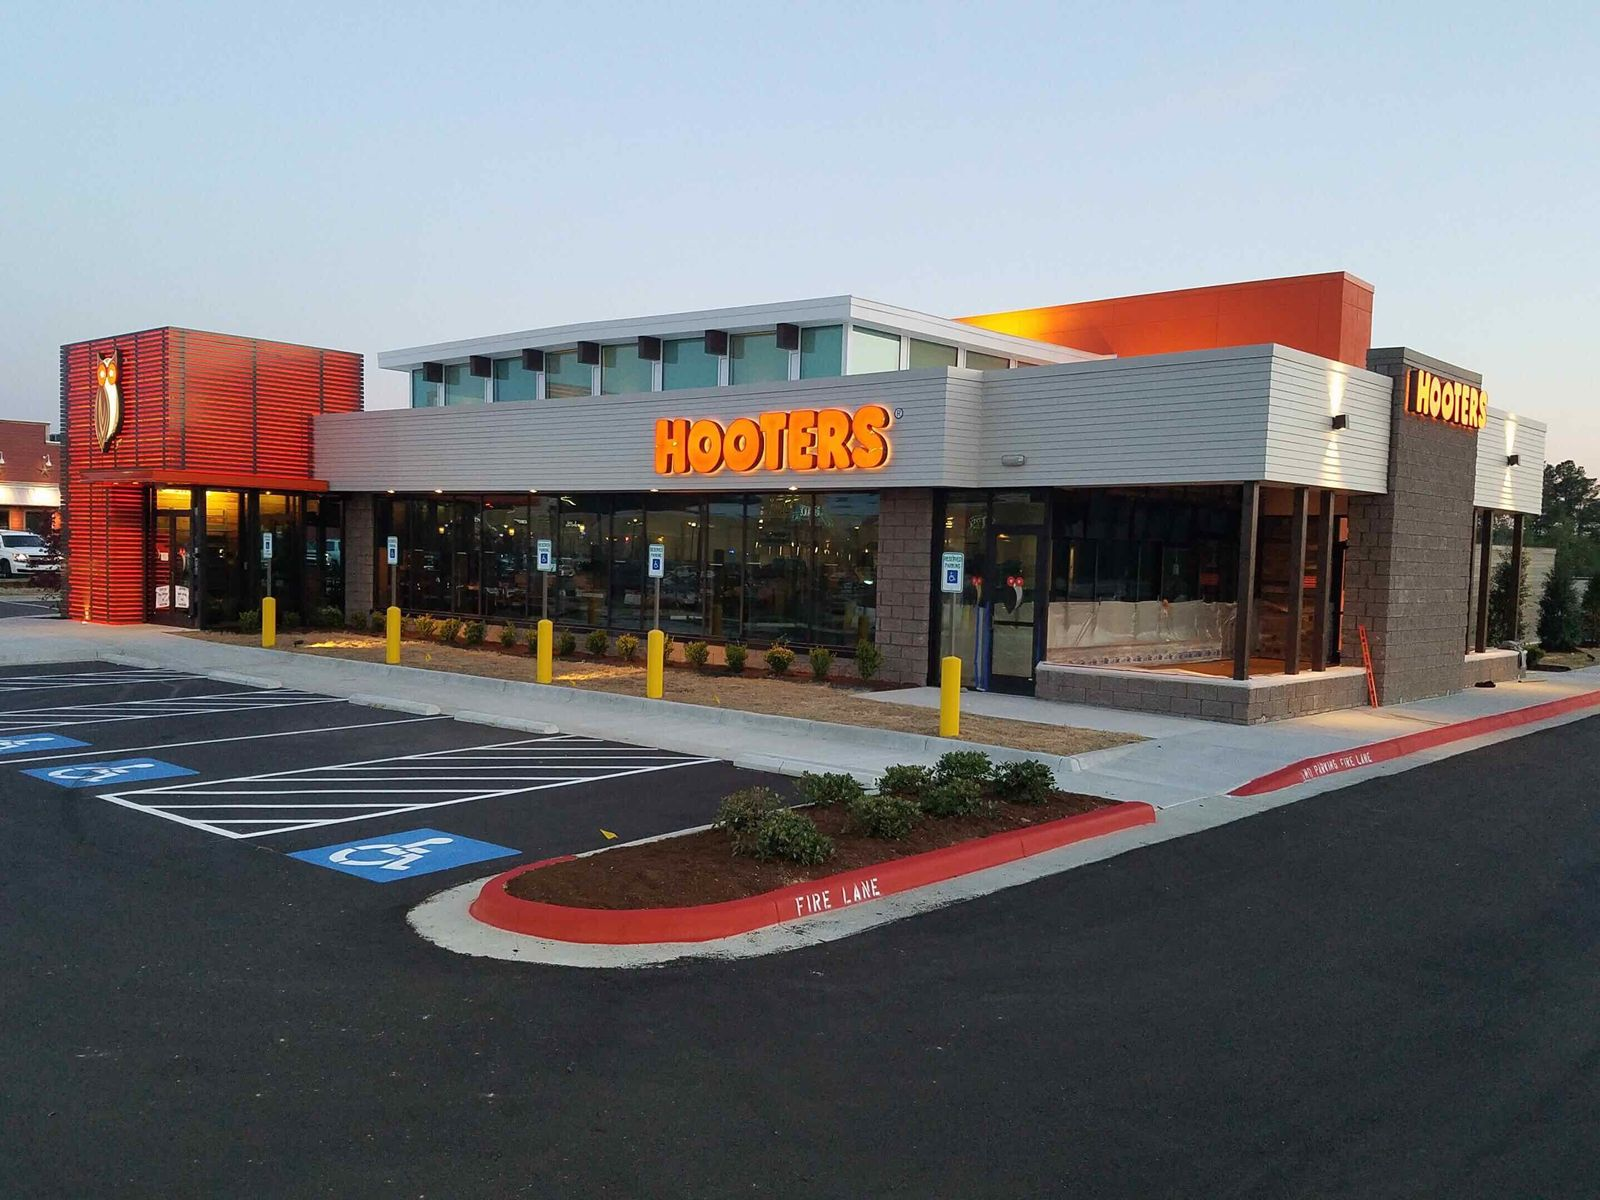 Hooters Opens Newest Location in West Little Rock, Arkansas